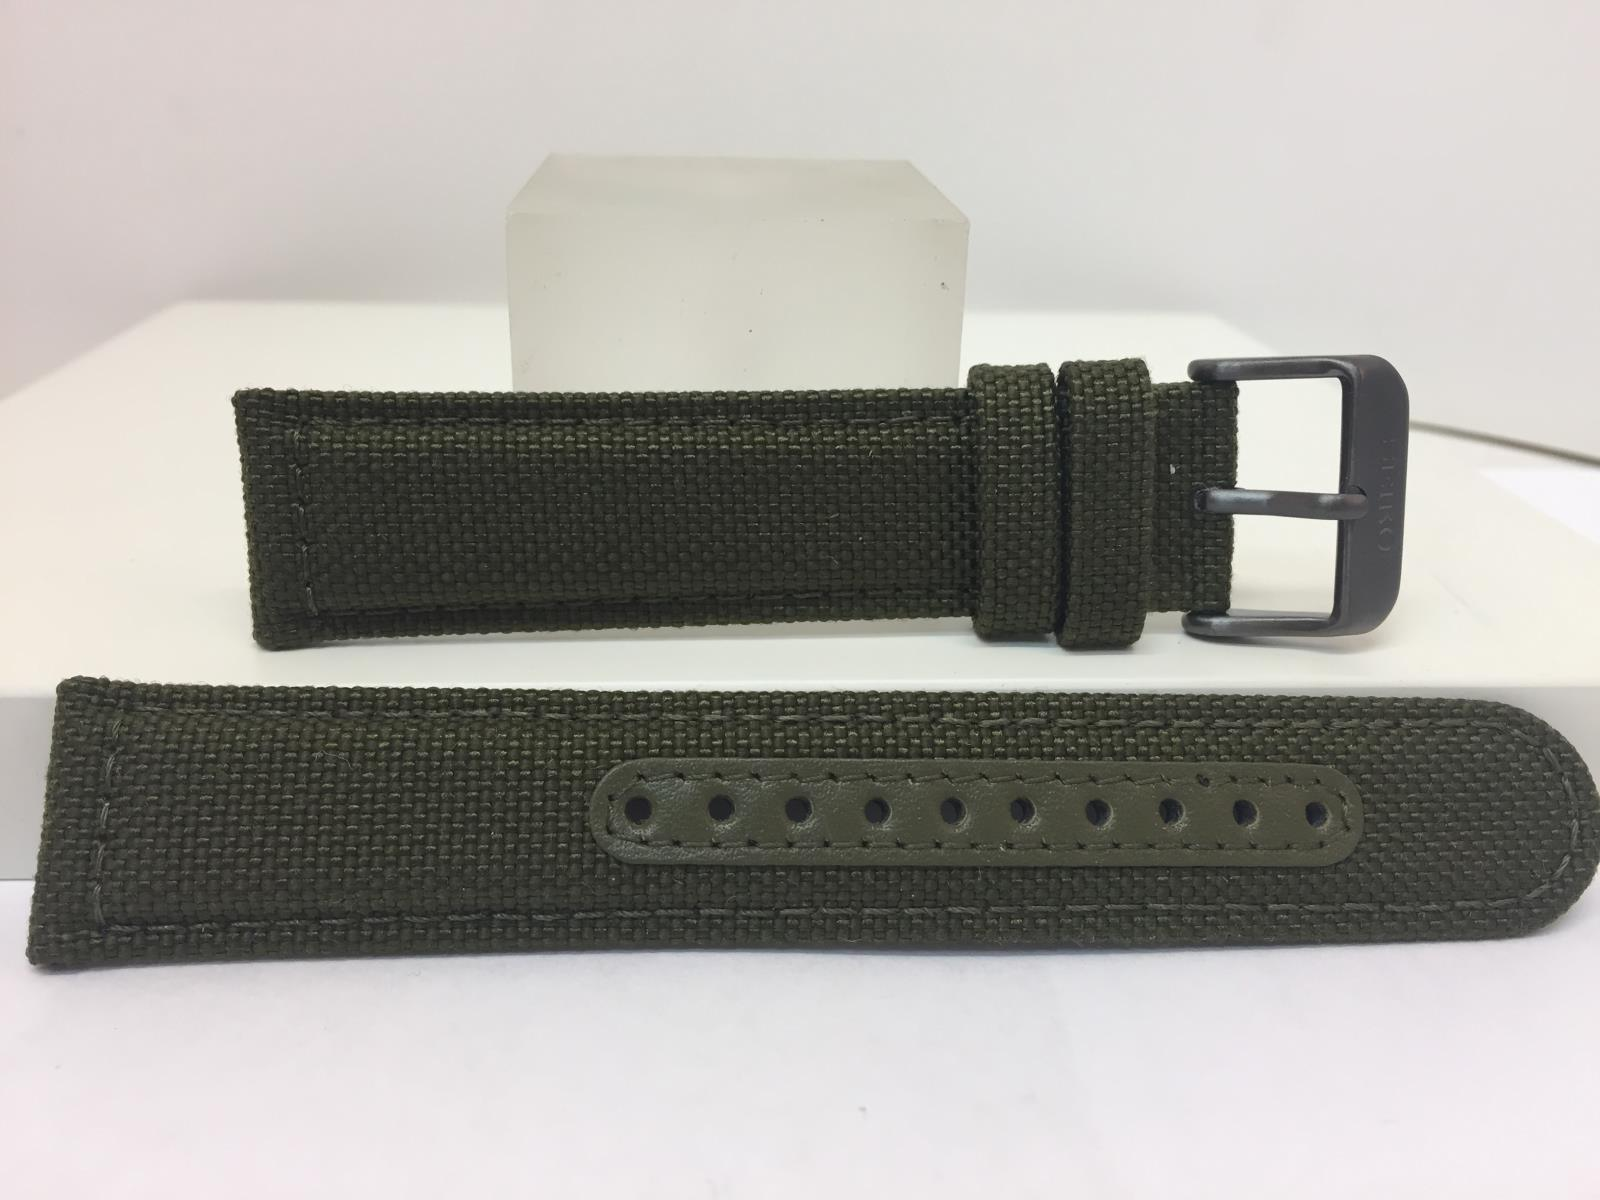 Seiko Watchband 21mm Military Green Fabric/Leather w/Black Steel Buckle. LODGH21